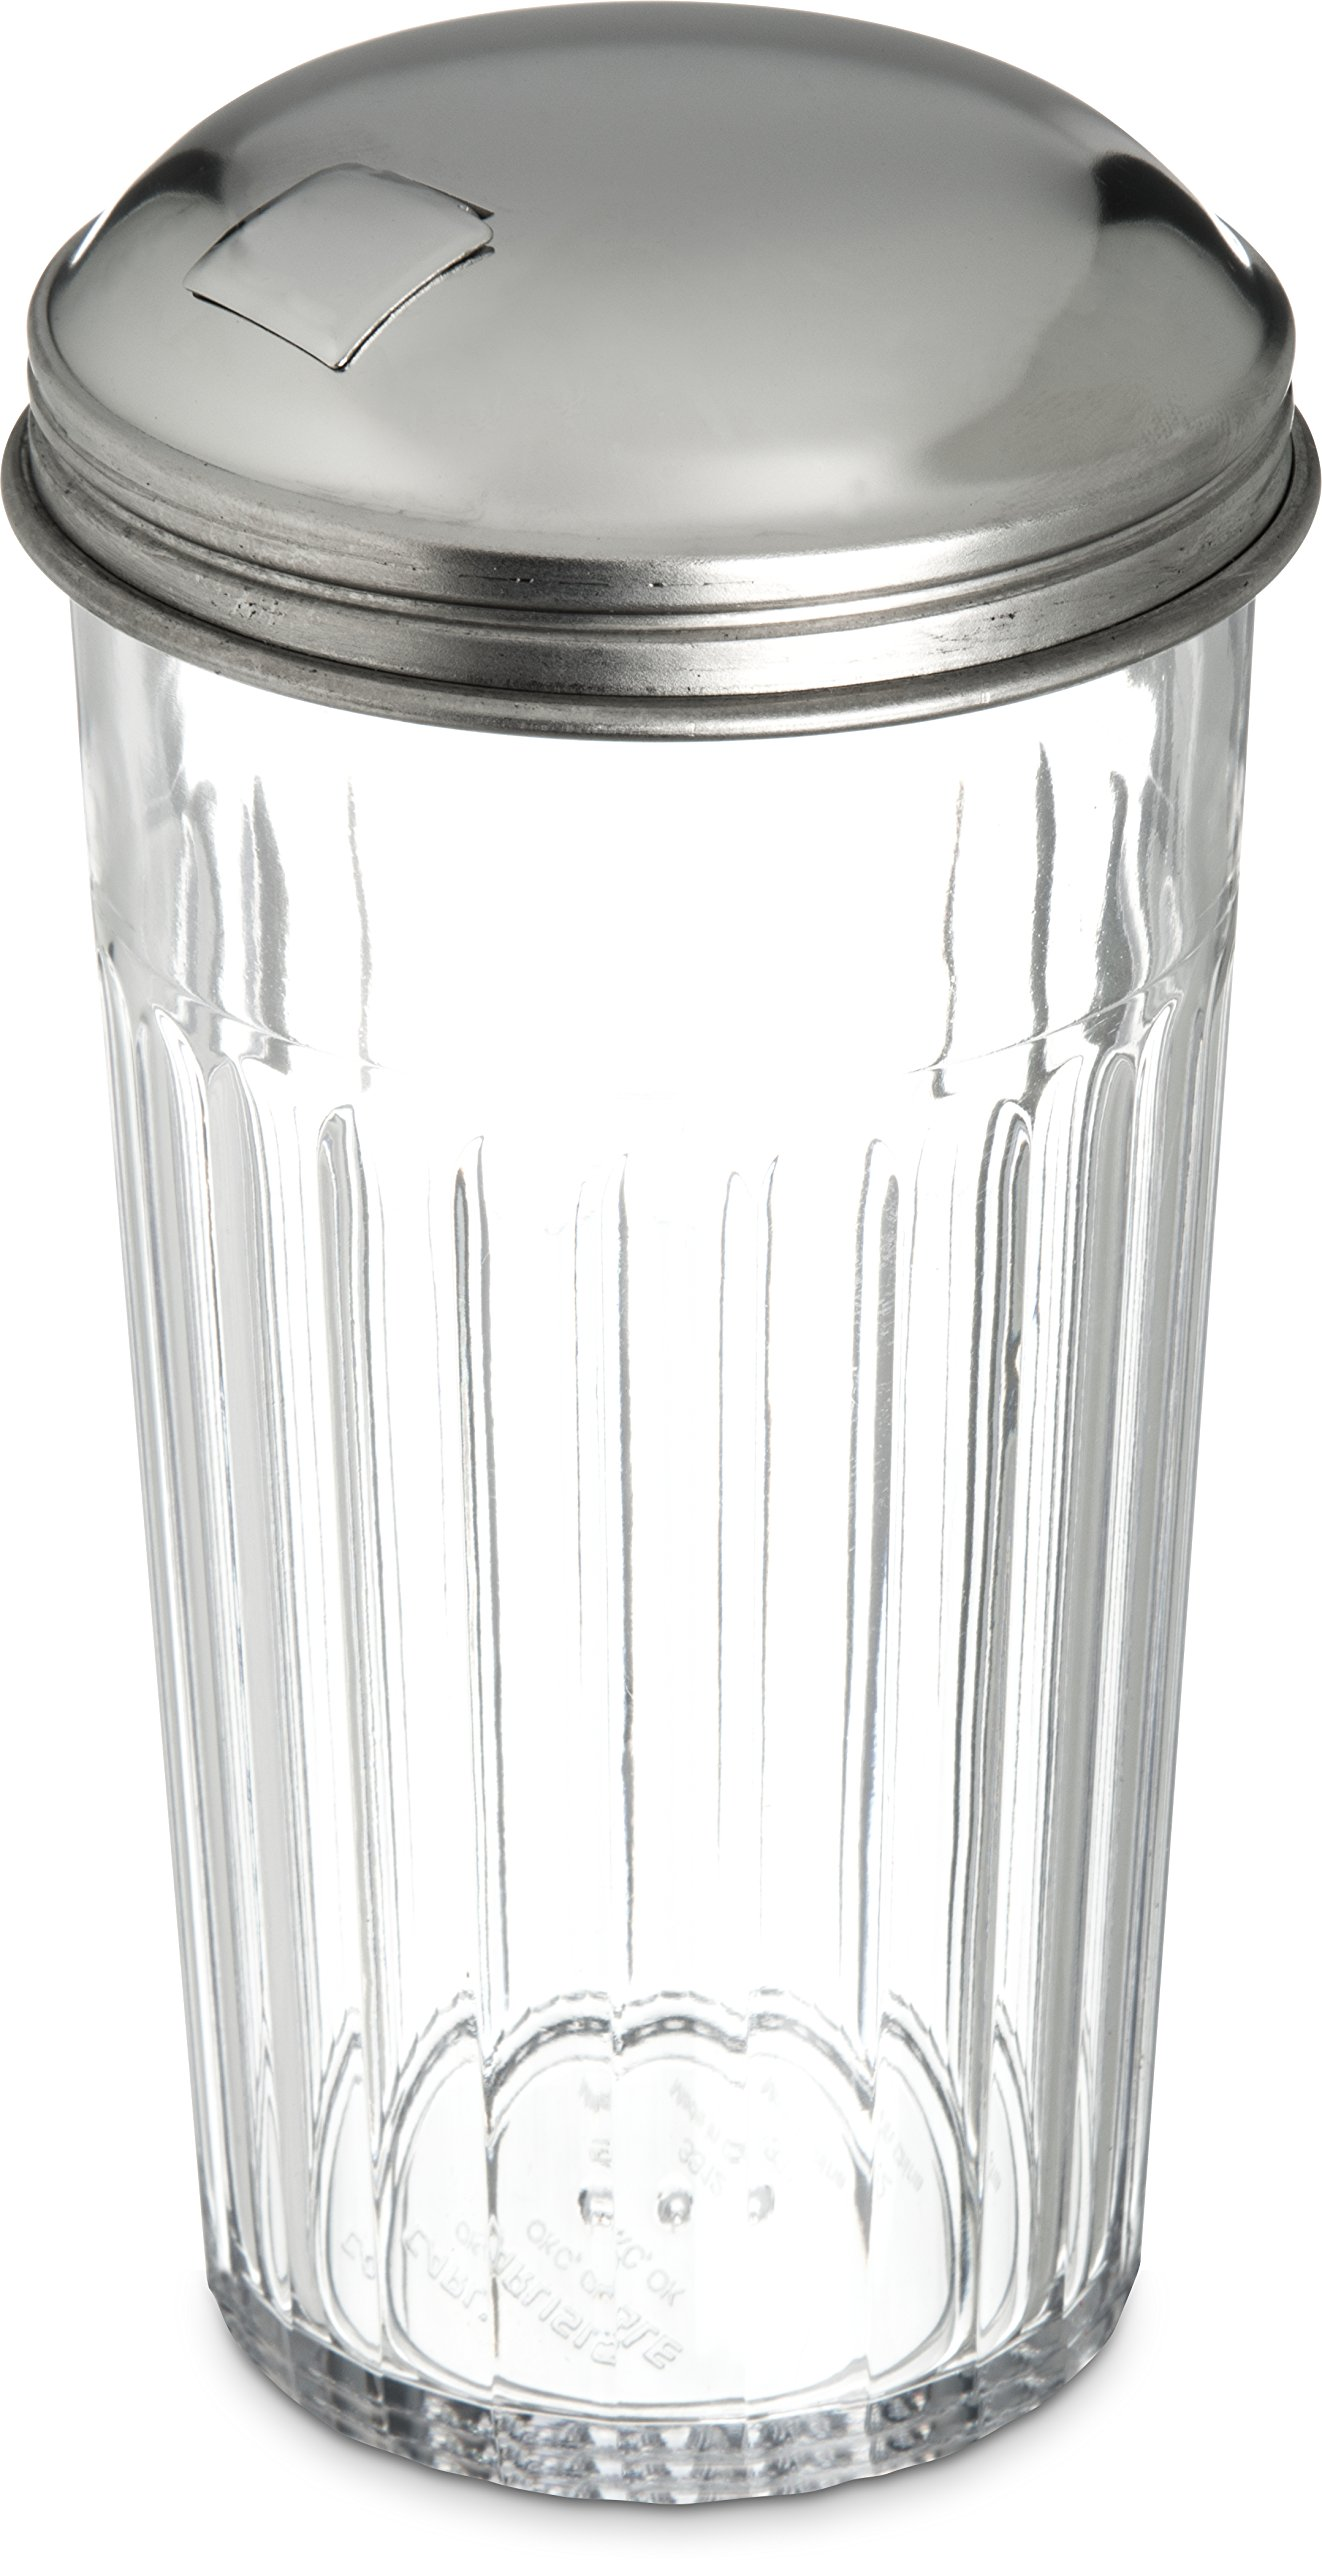 Carlisle 331607 SAN Base Sugar Pourer Shaker with Stainless Steel Top, 12-oz. Capacity, Clear (Case of 36)